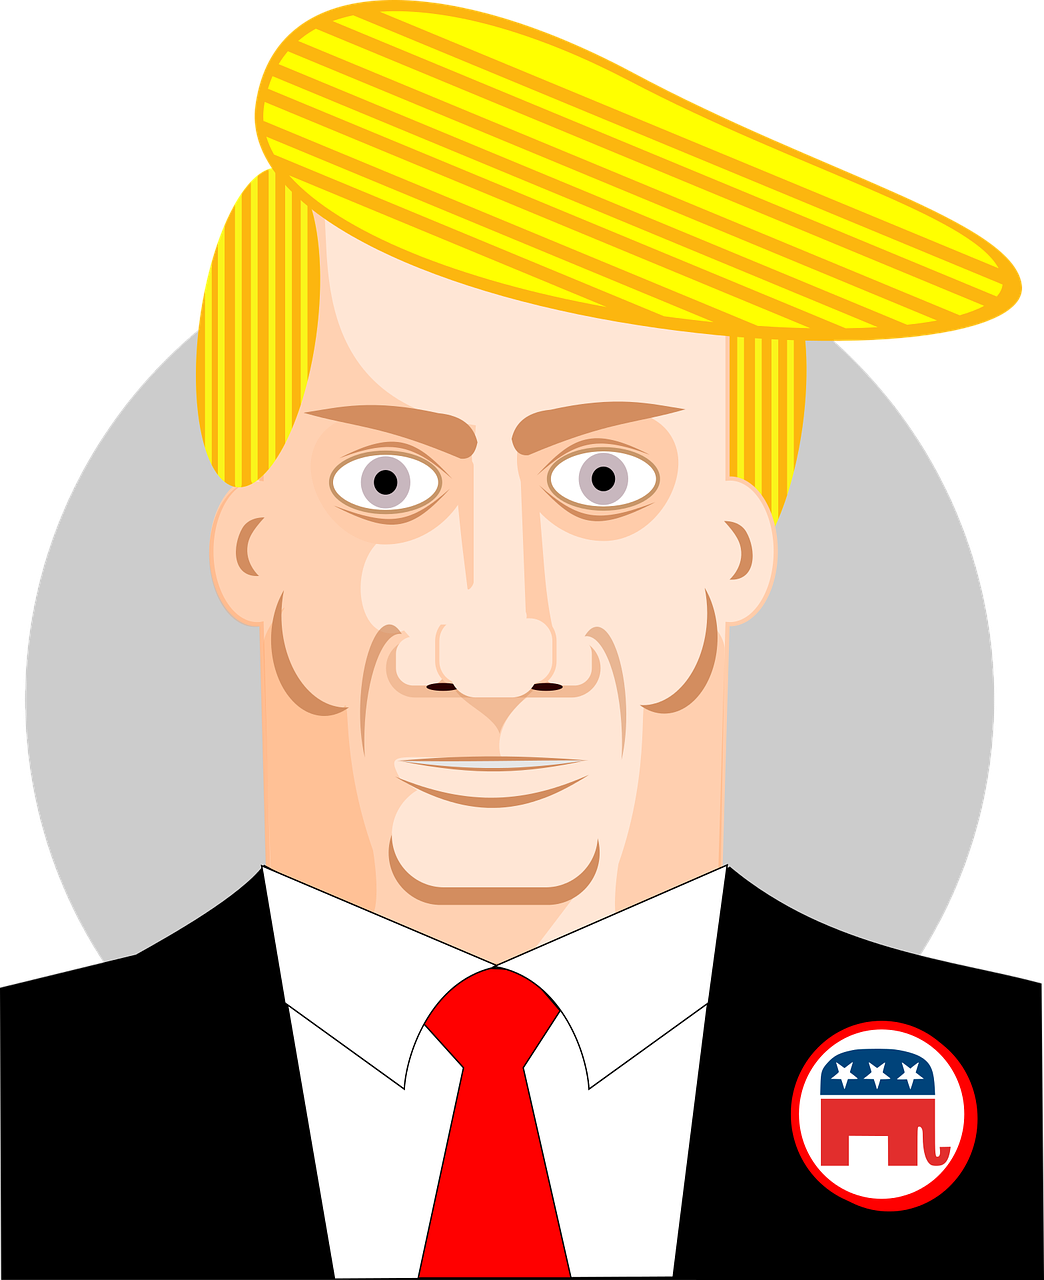 David goes to school clipart png black and white library Trump's Brain: Cracking The Code, Part 2 — Understanding What Mr ... png black and white library